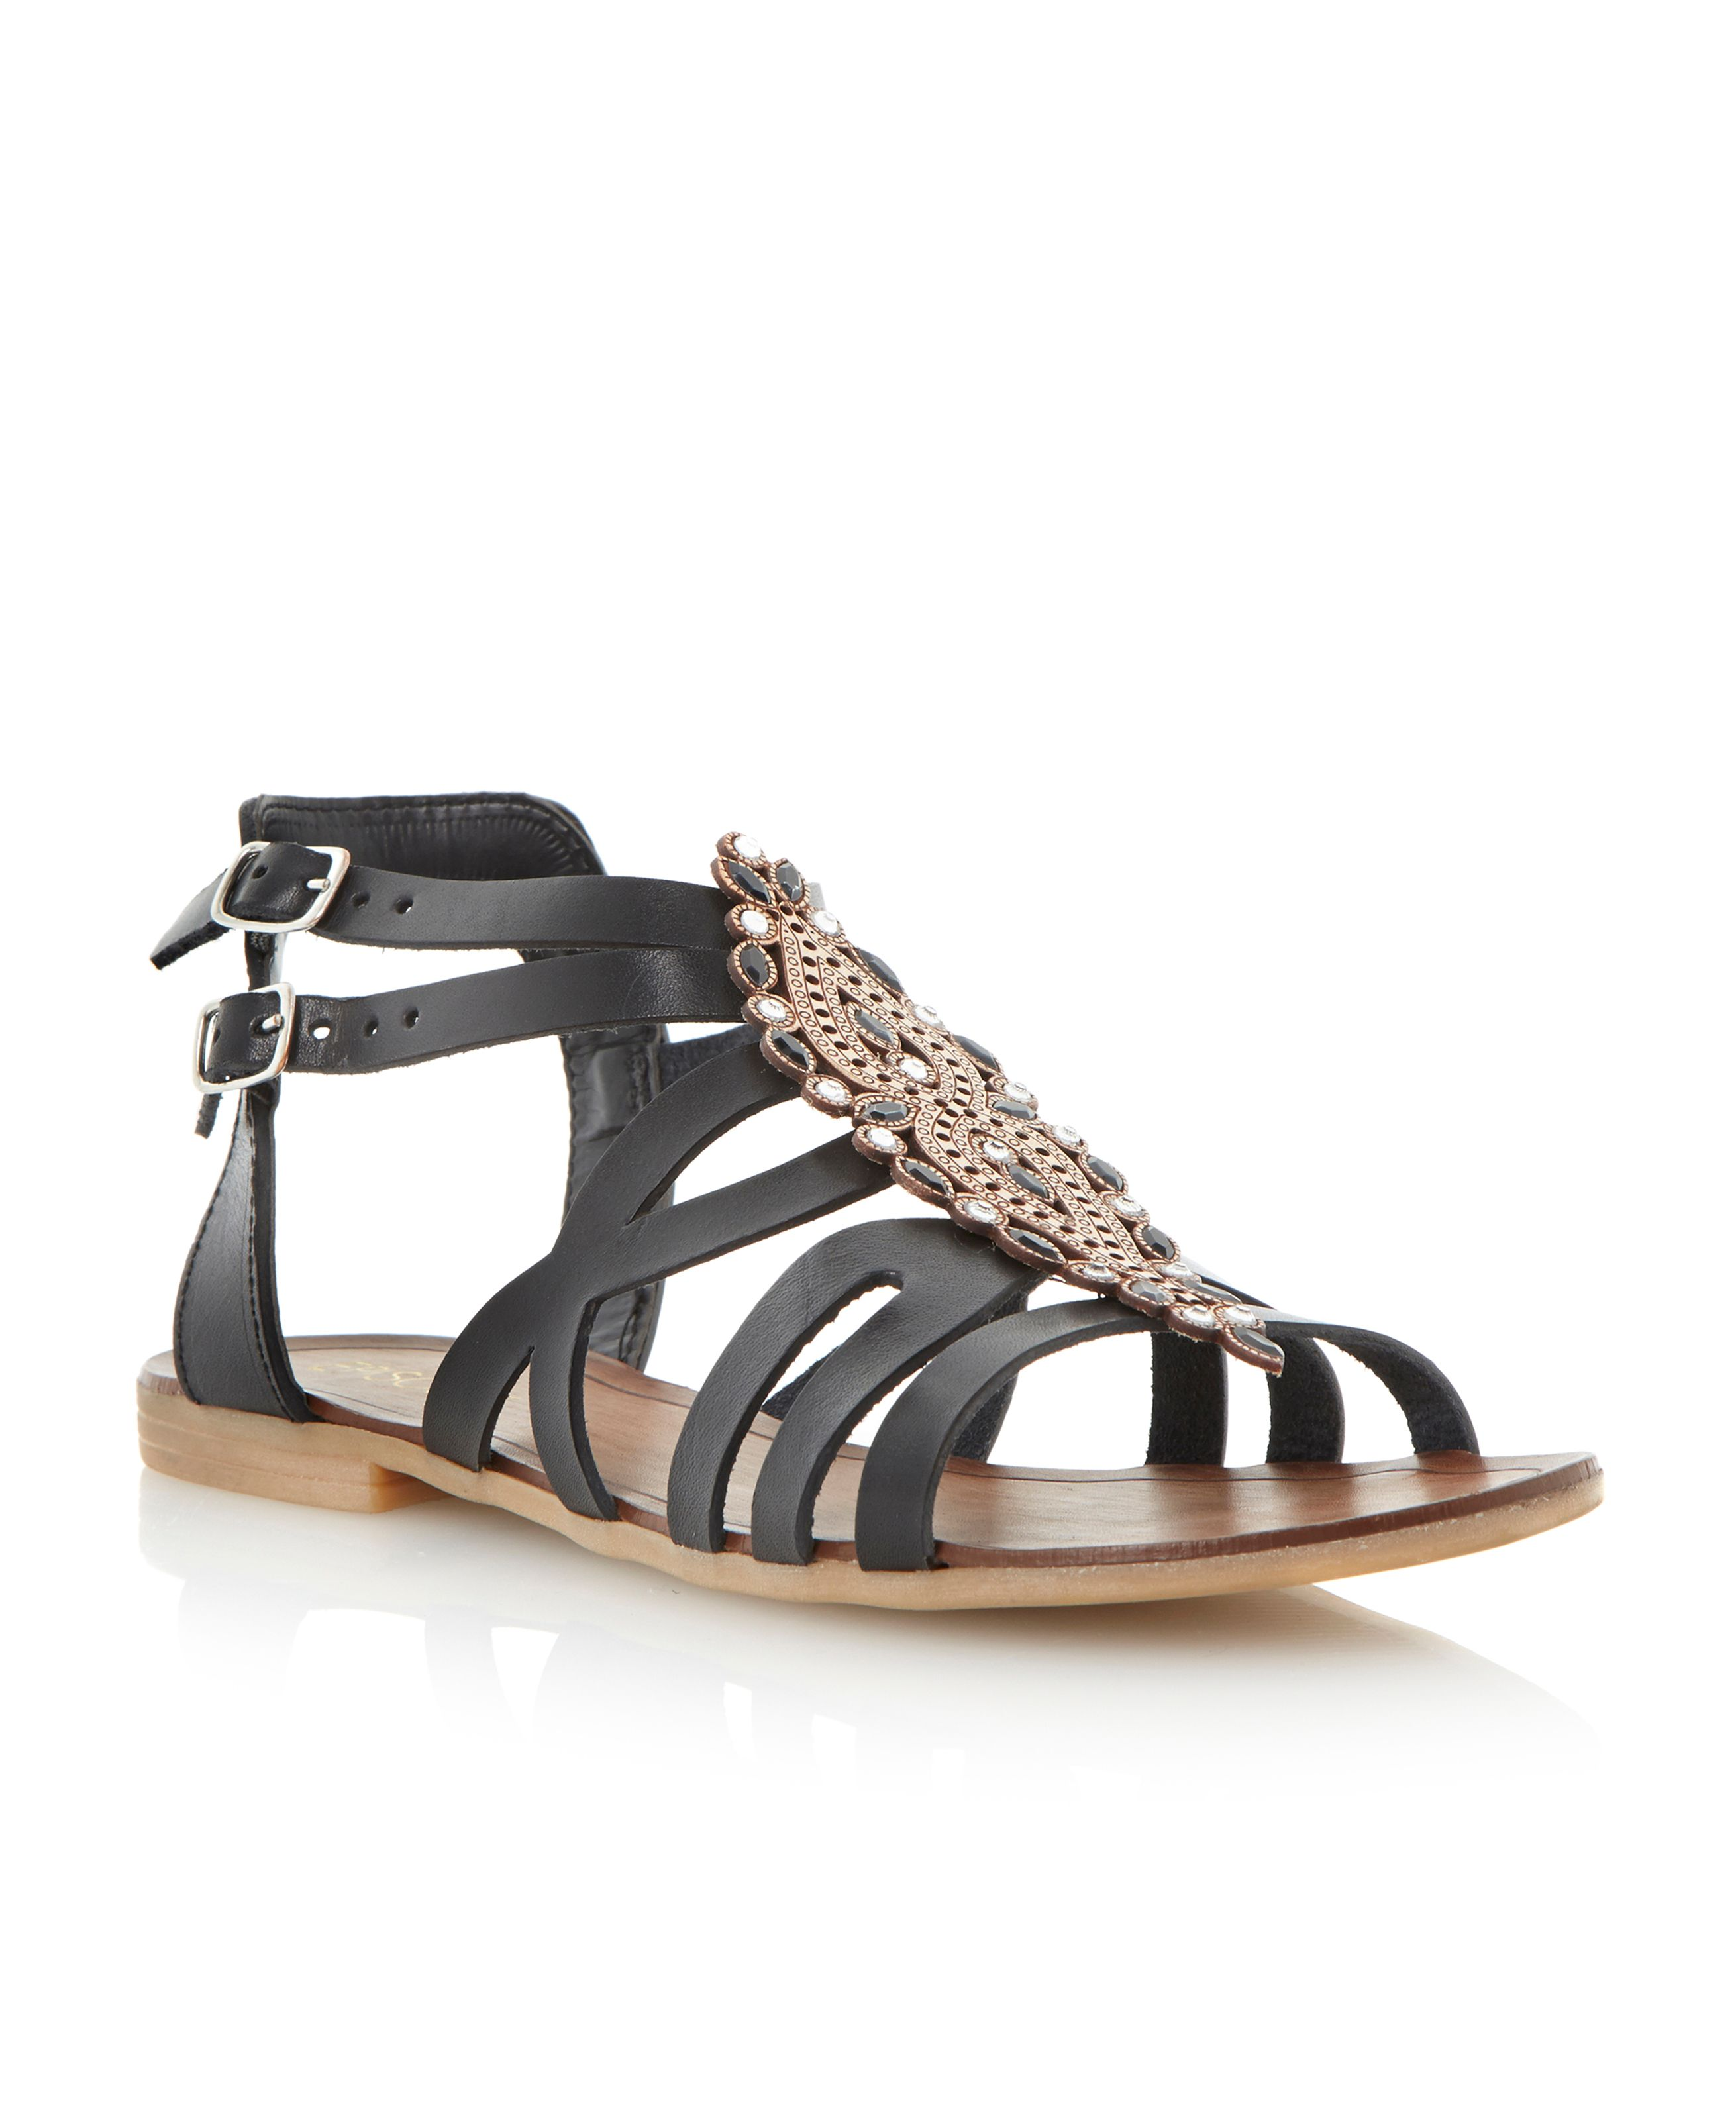 Janterina leather flat sandals